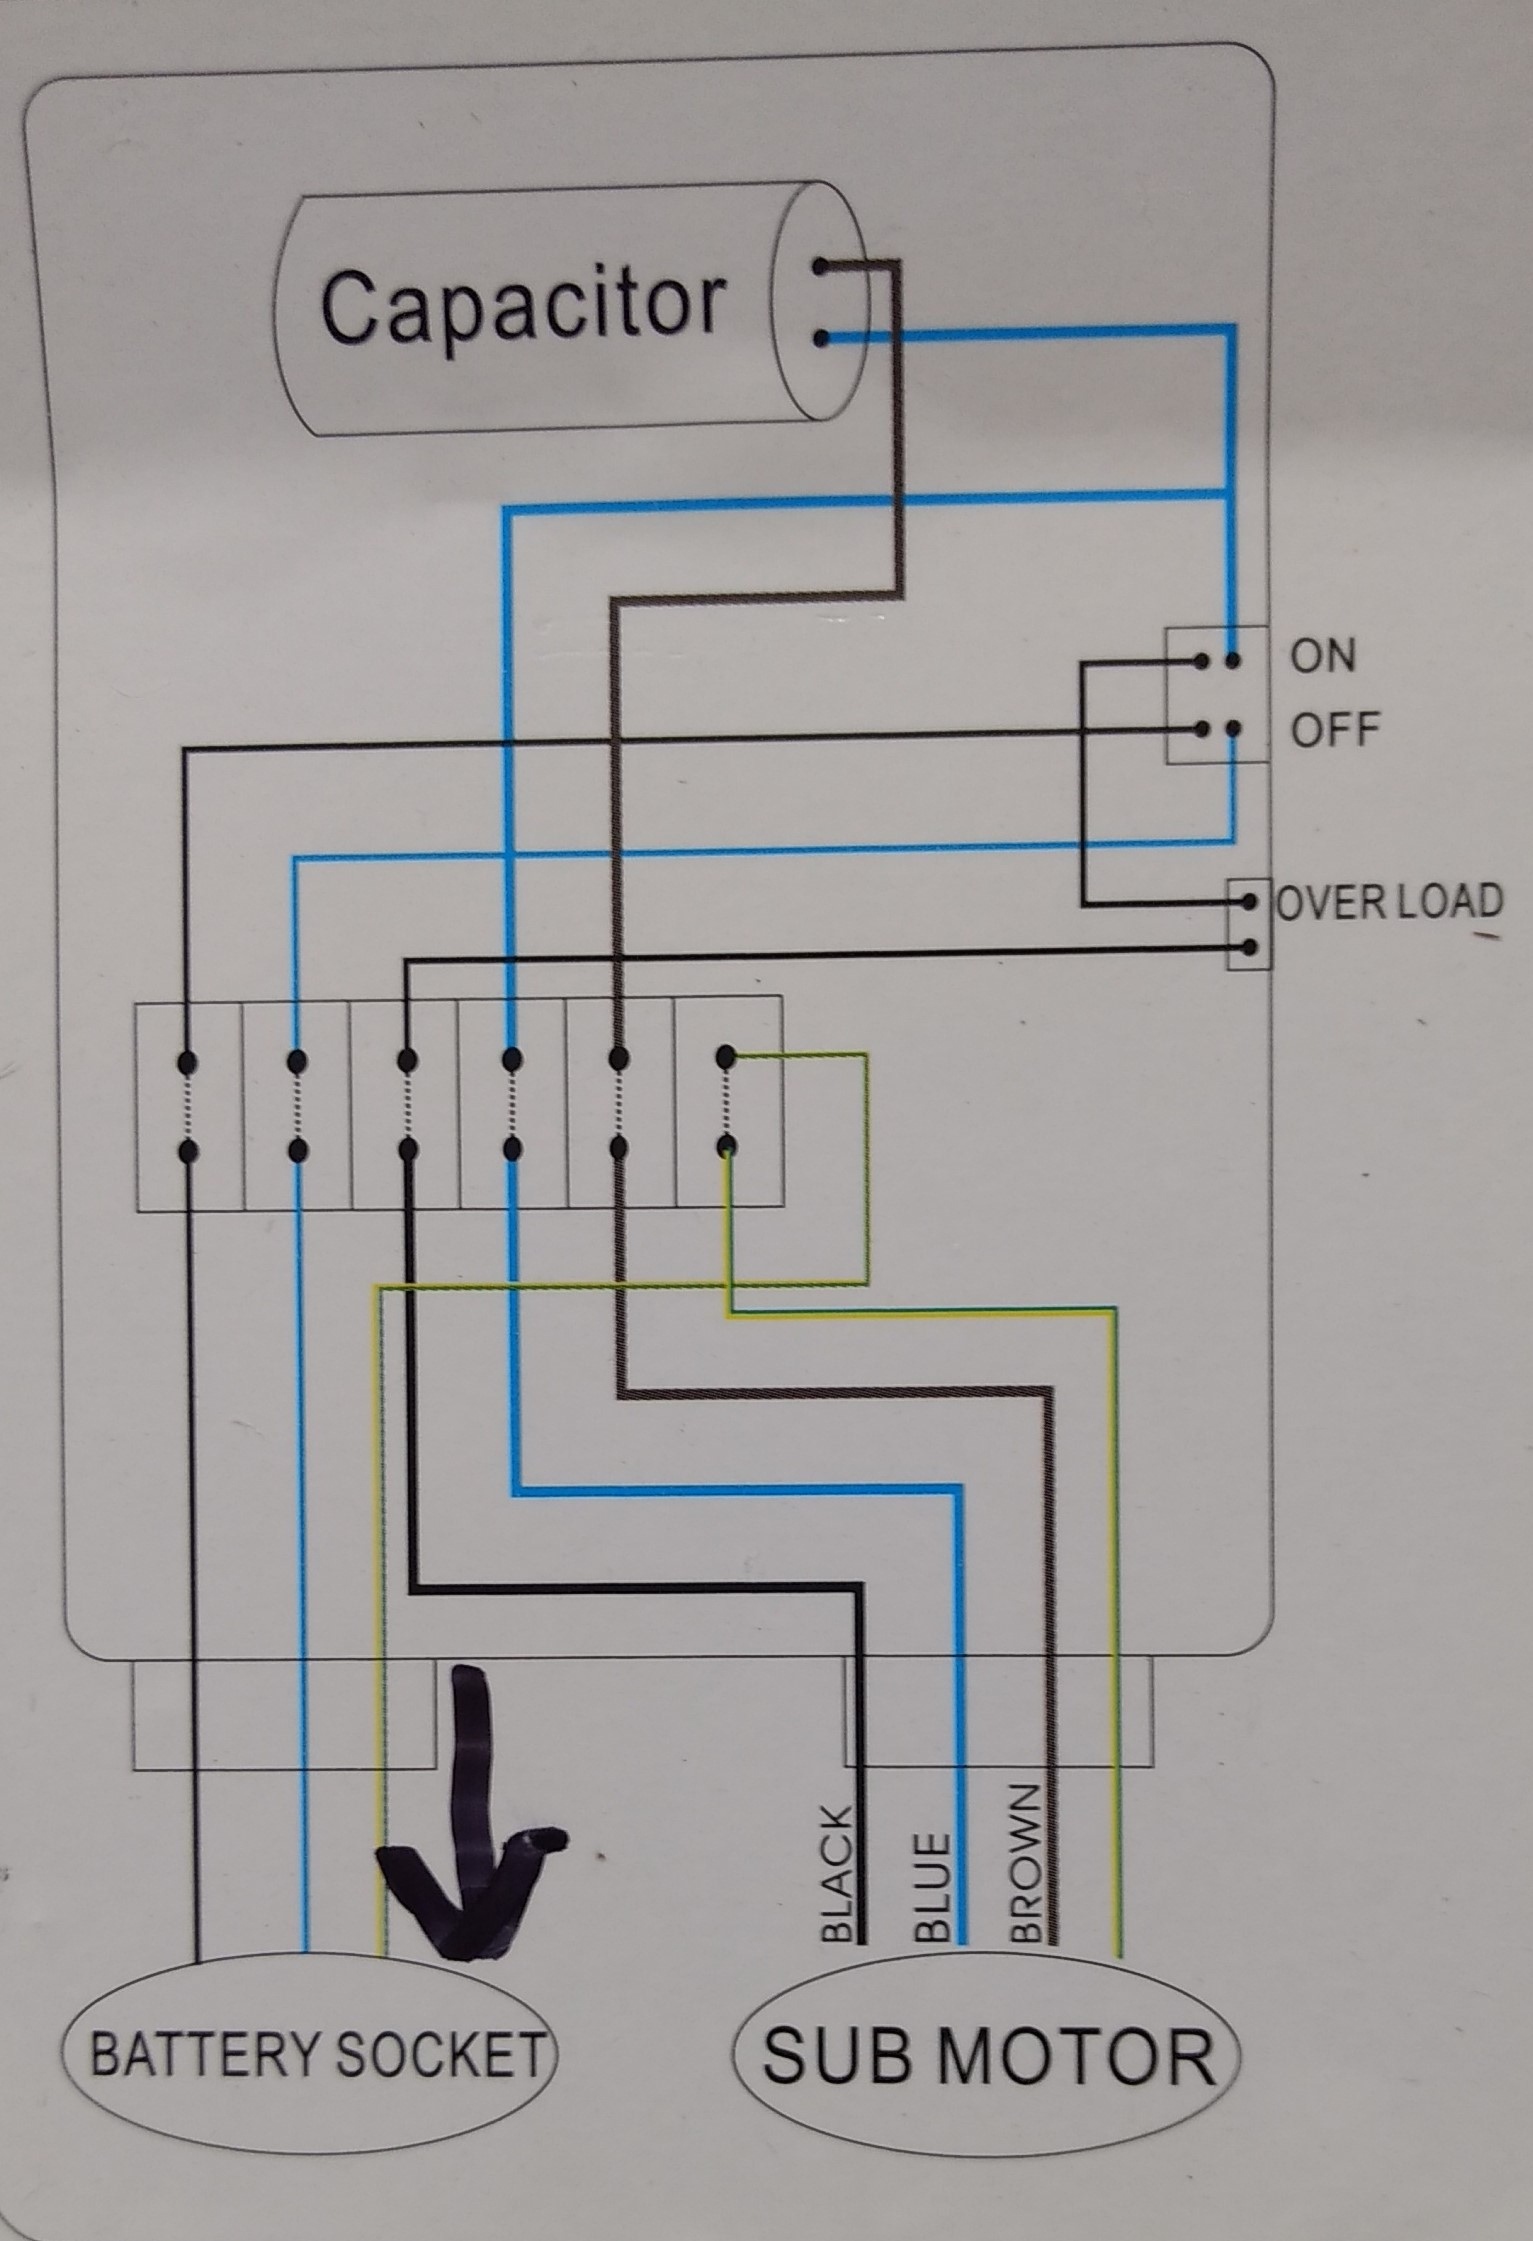 Control Box Wiring - Wiring Diagram Data Oreo - Well Pump Control Box Wiring Diagram